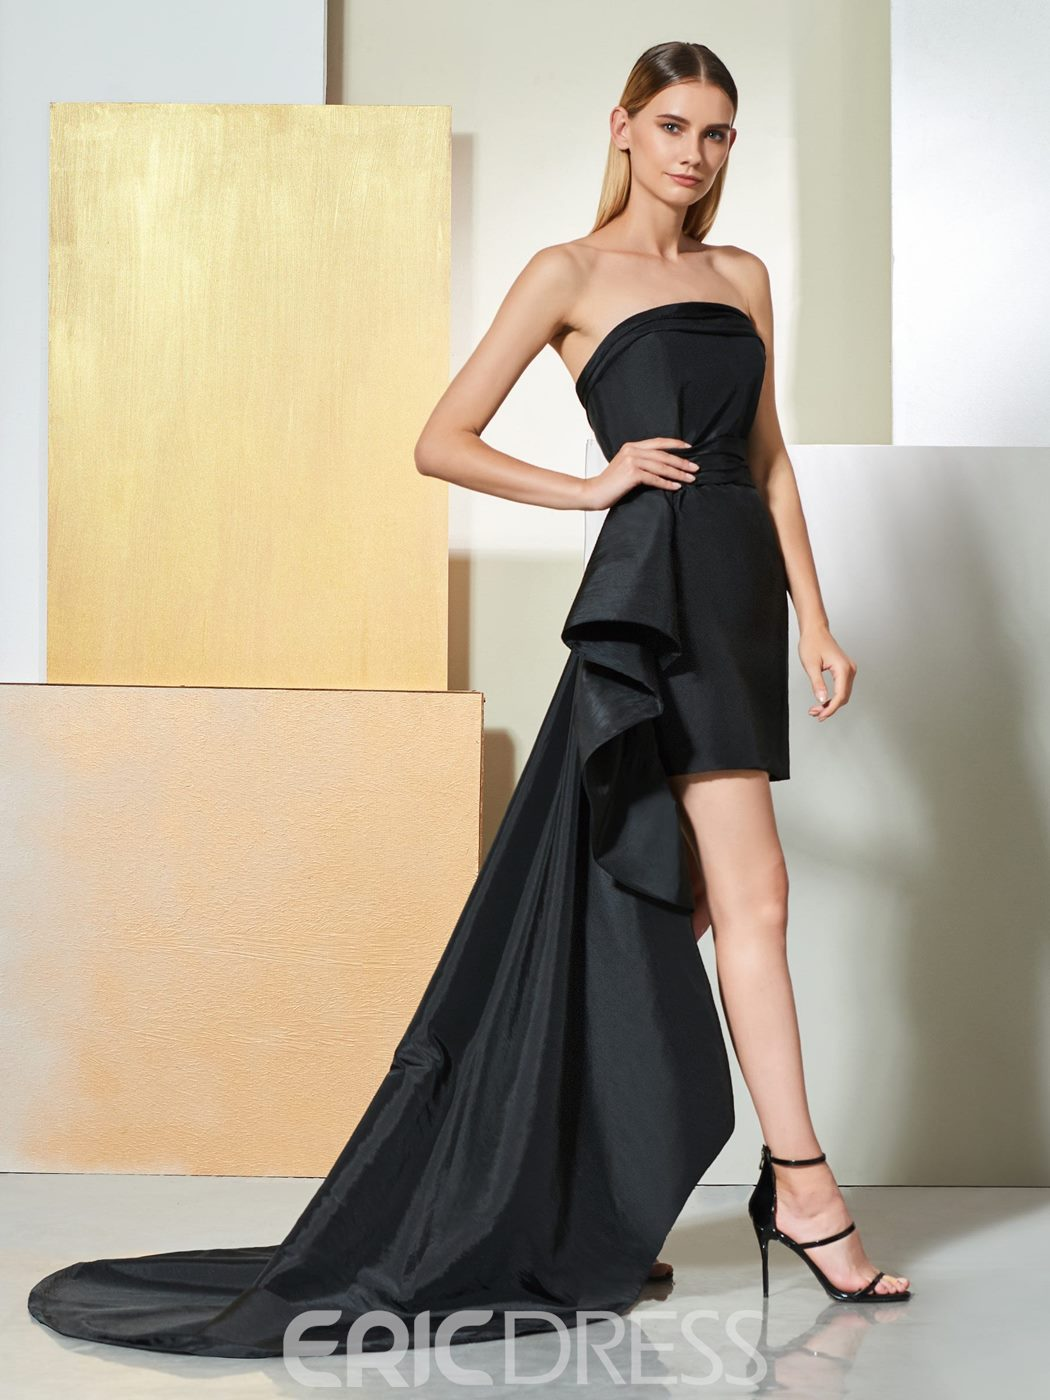 Ericdress Sheath Strapless Black Cocktail Dress With Train